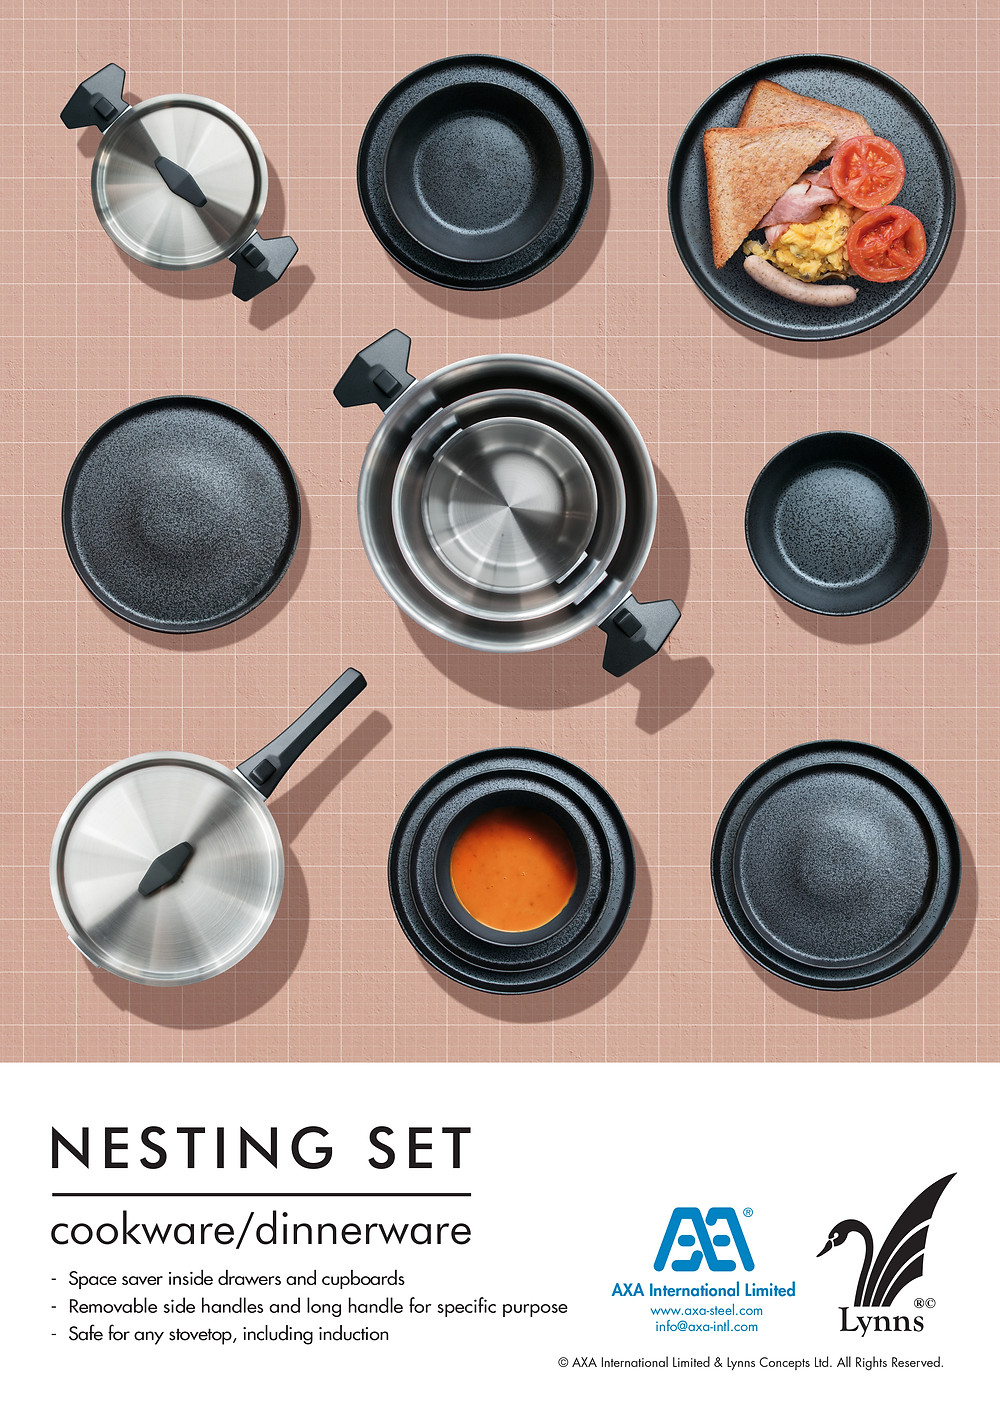 nesting set for cooking and serving